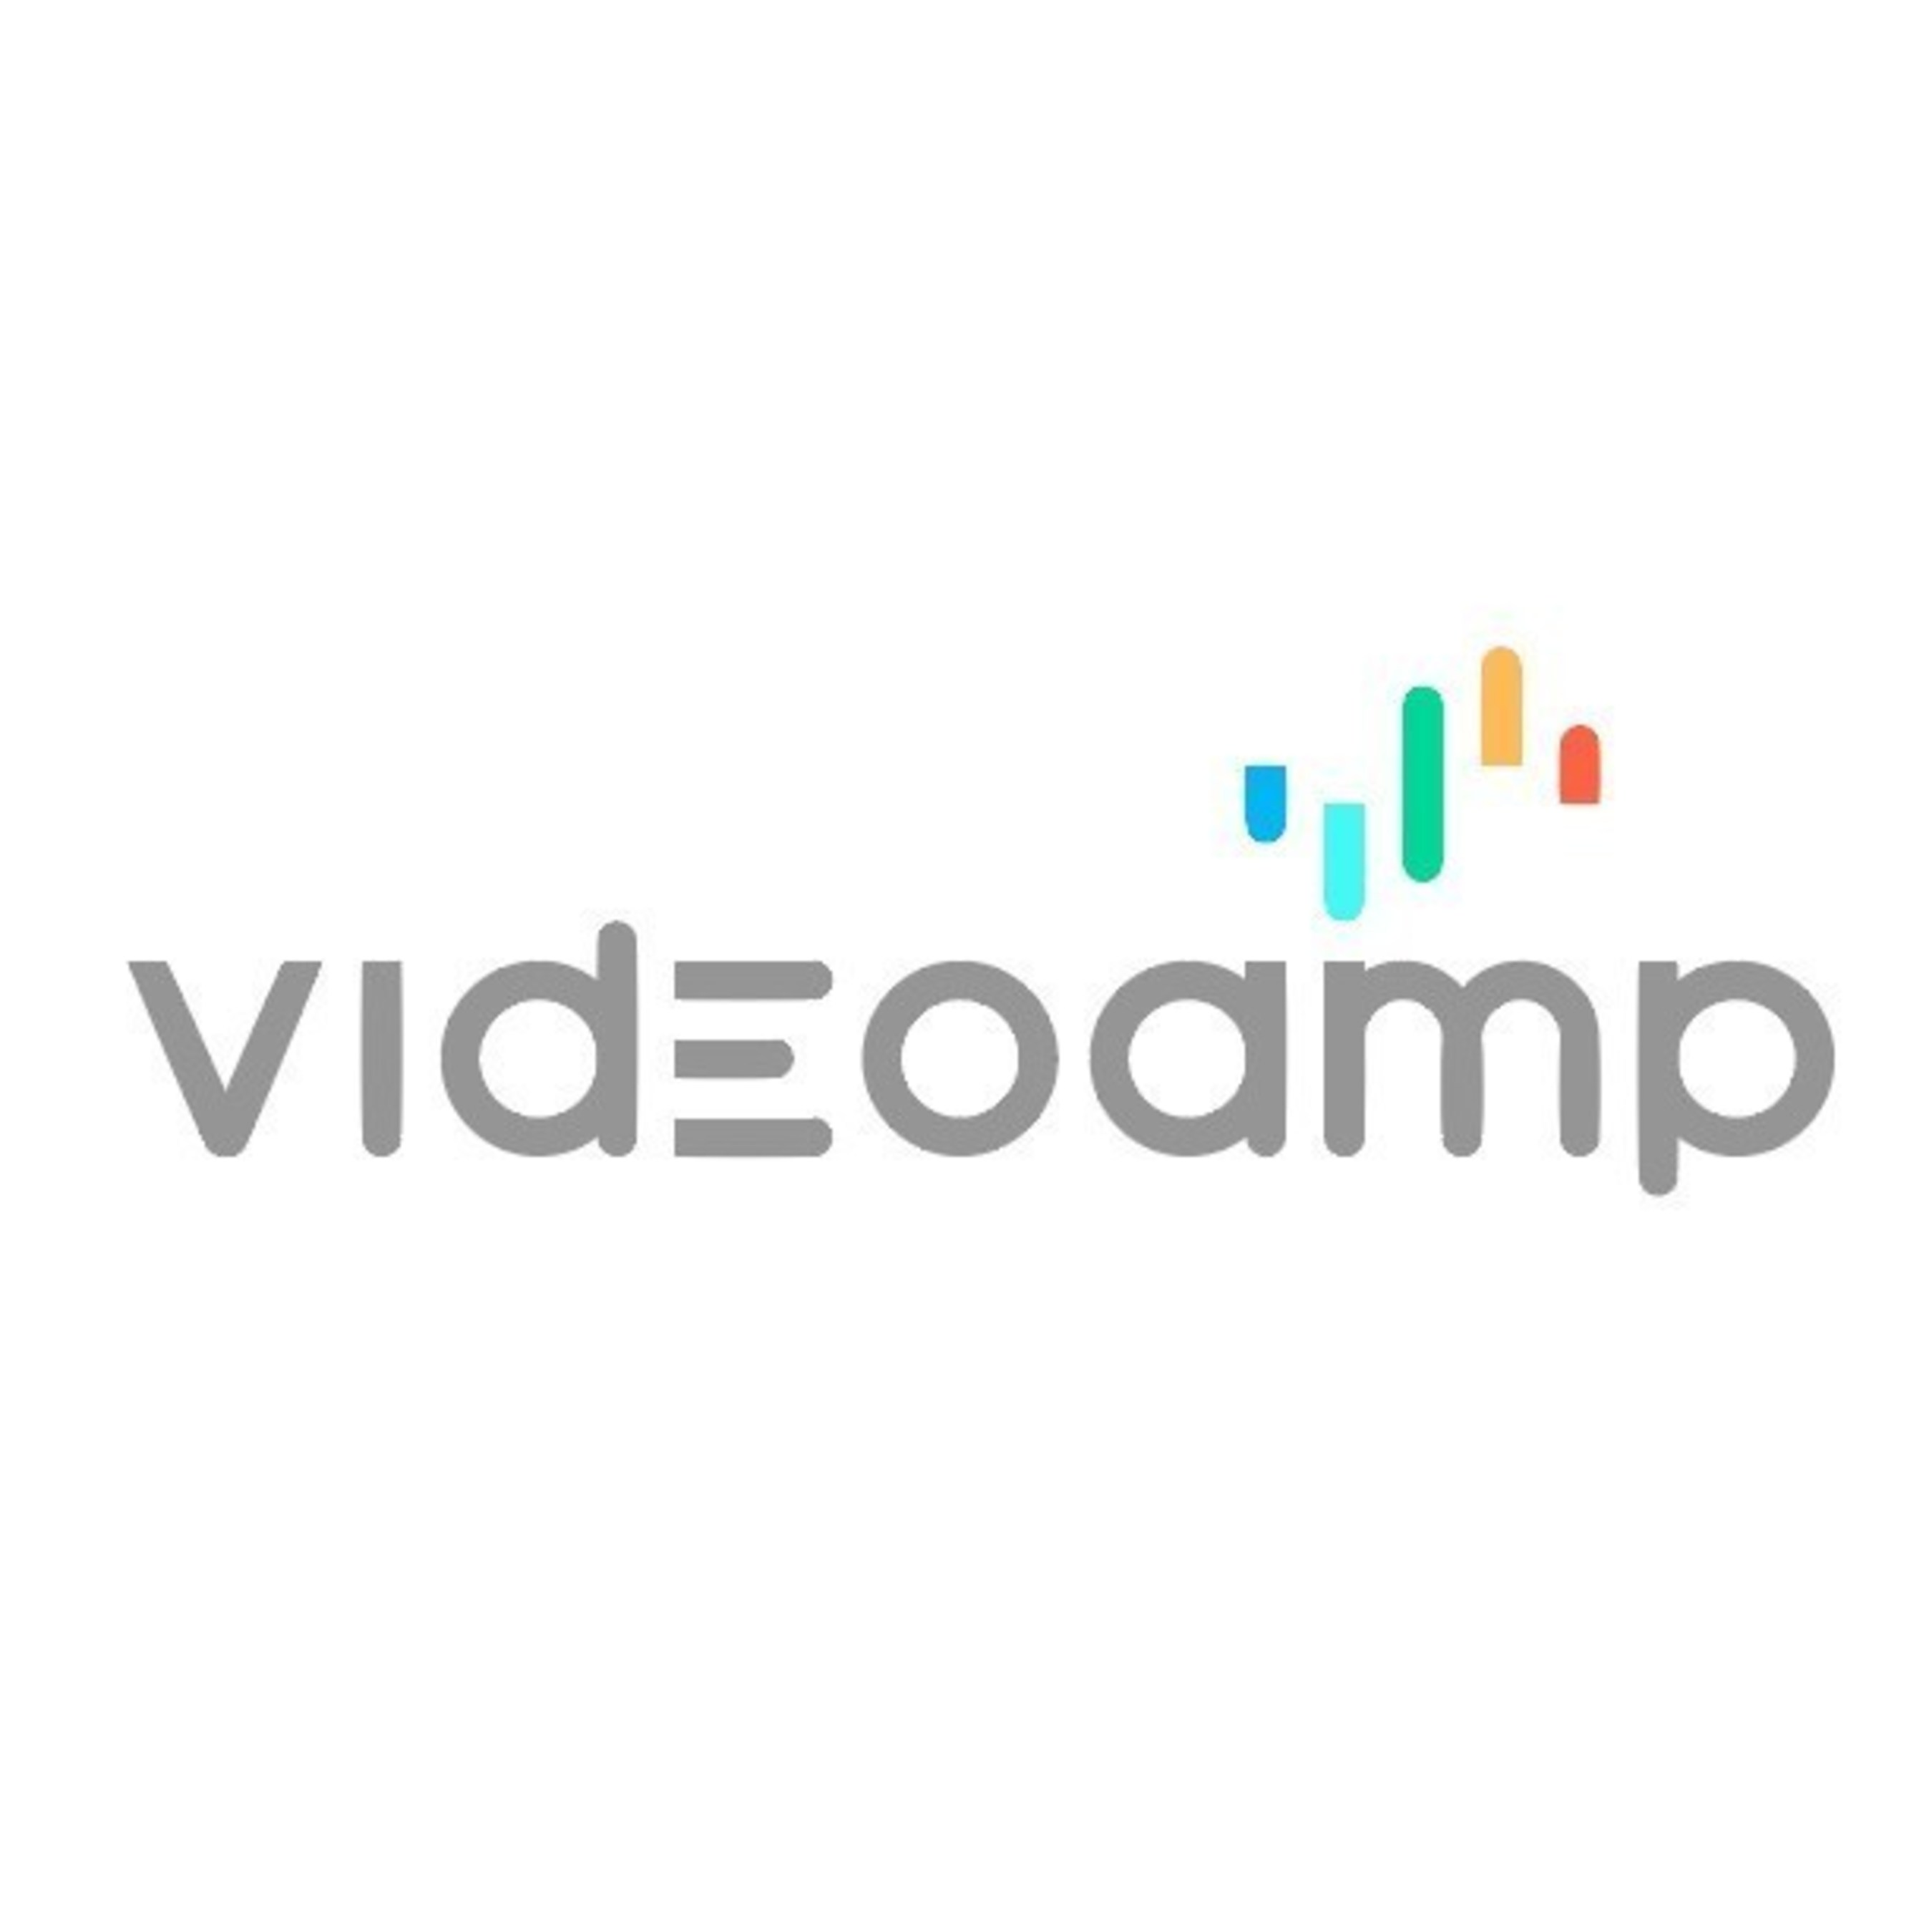 VideoAmp Raises $15M Series A Funding Led By RTL Group